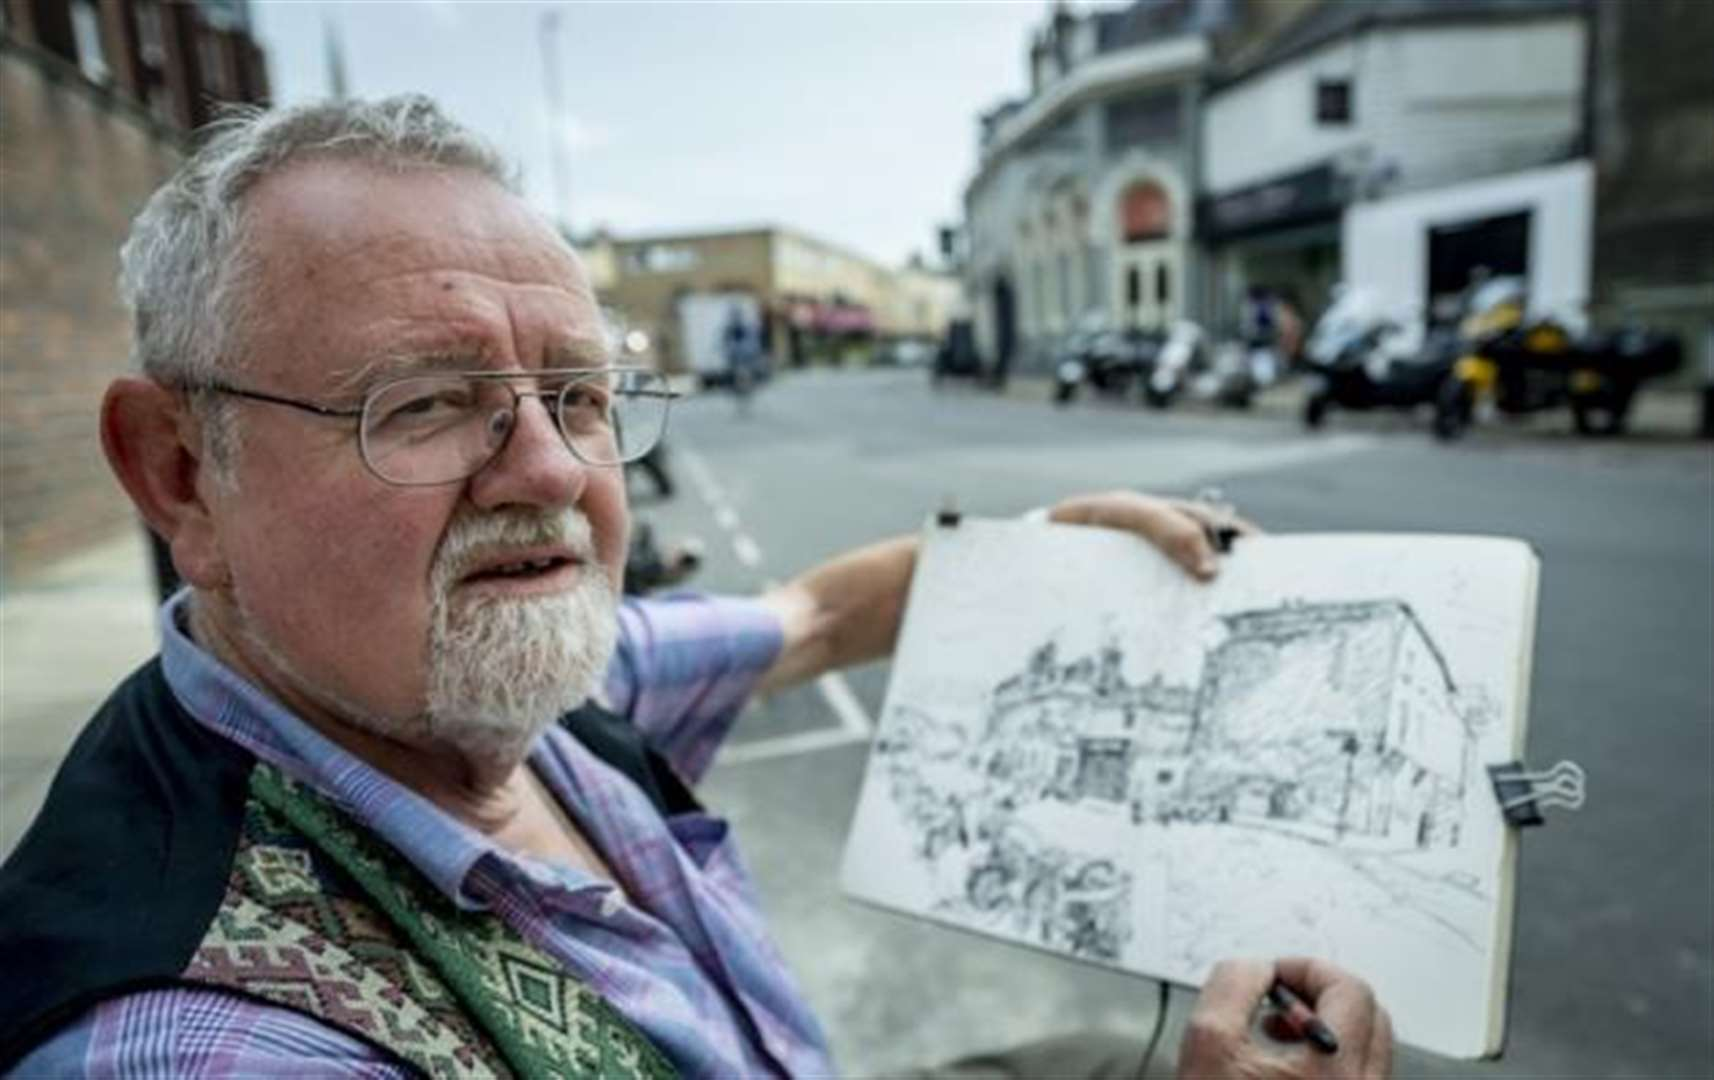 Cambridge artist Jon Harris has been documenting life in the city through art for more than 50 years